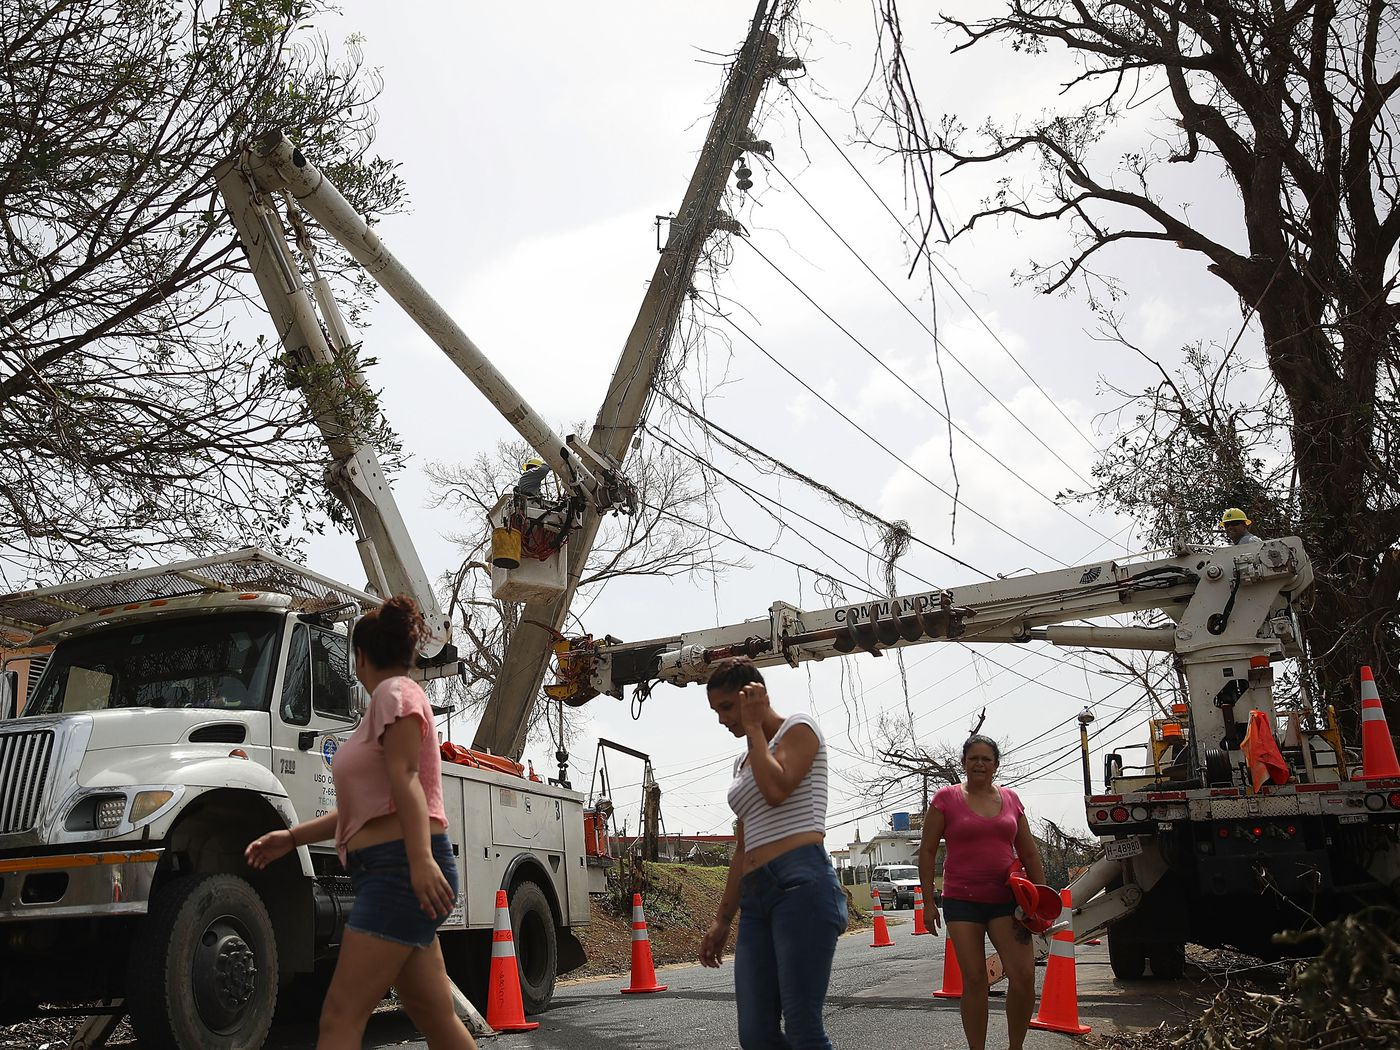 Puerto Rico just hired 2 contractors with little experience to fix its  broken power grid - Vox